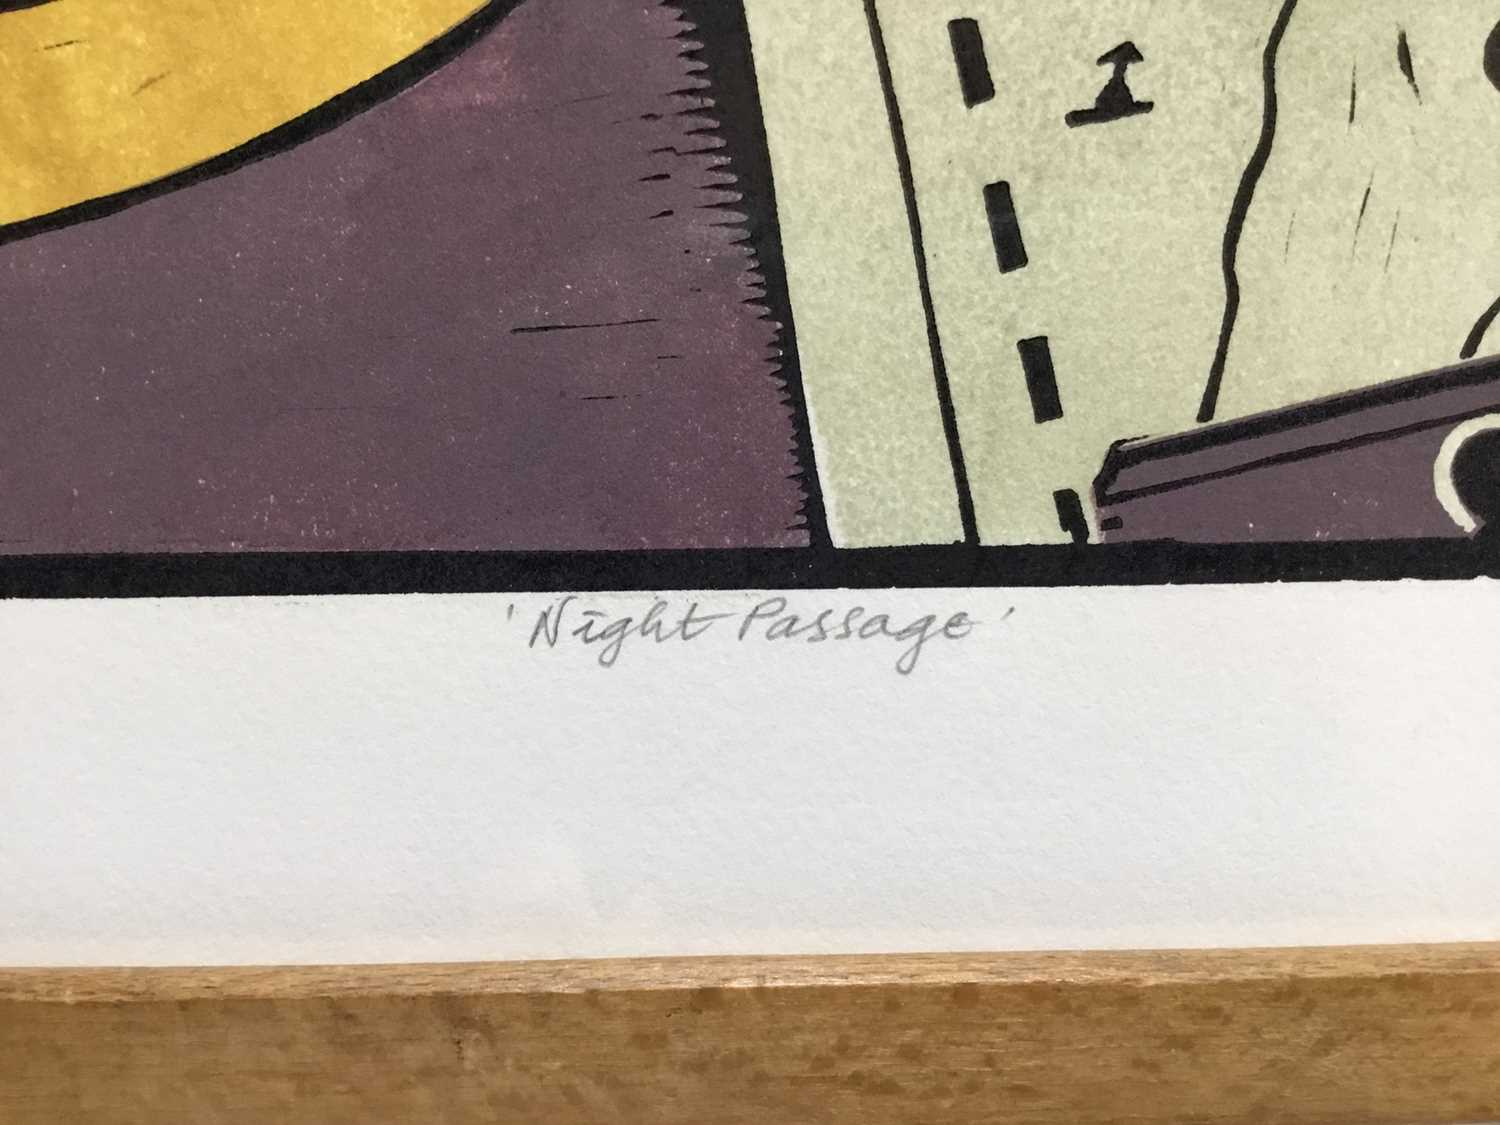 Penny Berry Paterson (1941-2021) coloured linocut print, Night Passage, signed and numbered 1/30, 33 - Image 3 of 4